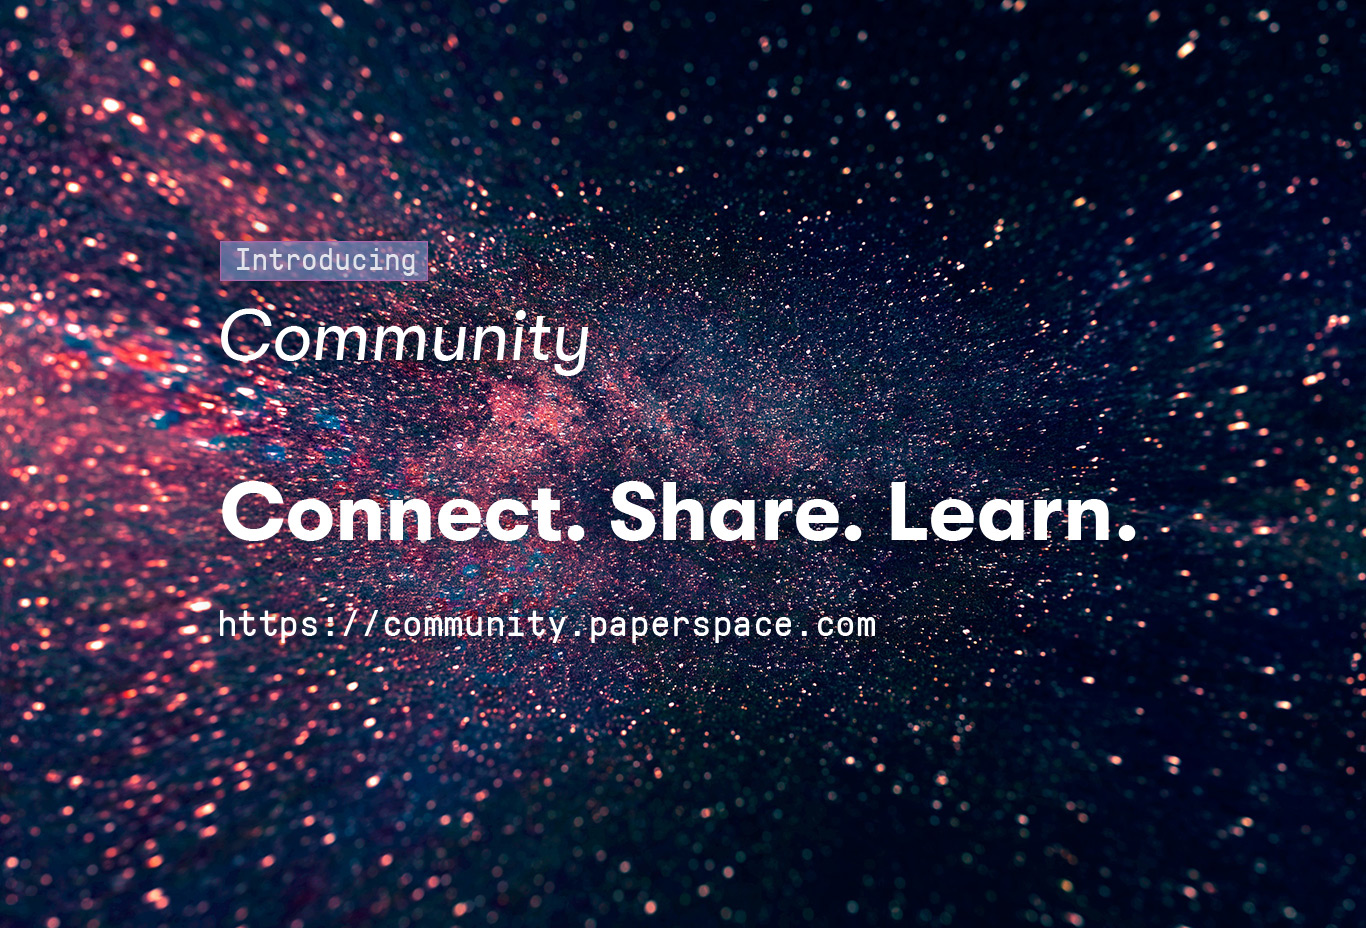 The New Paperspace Community